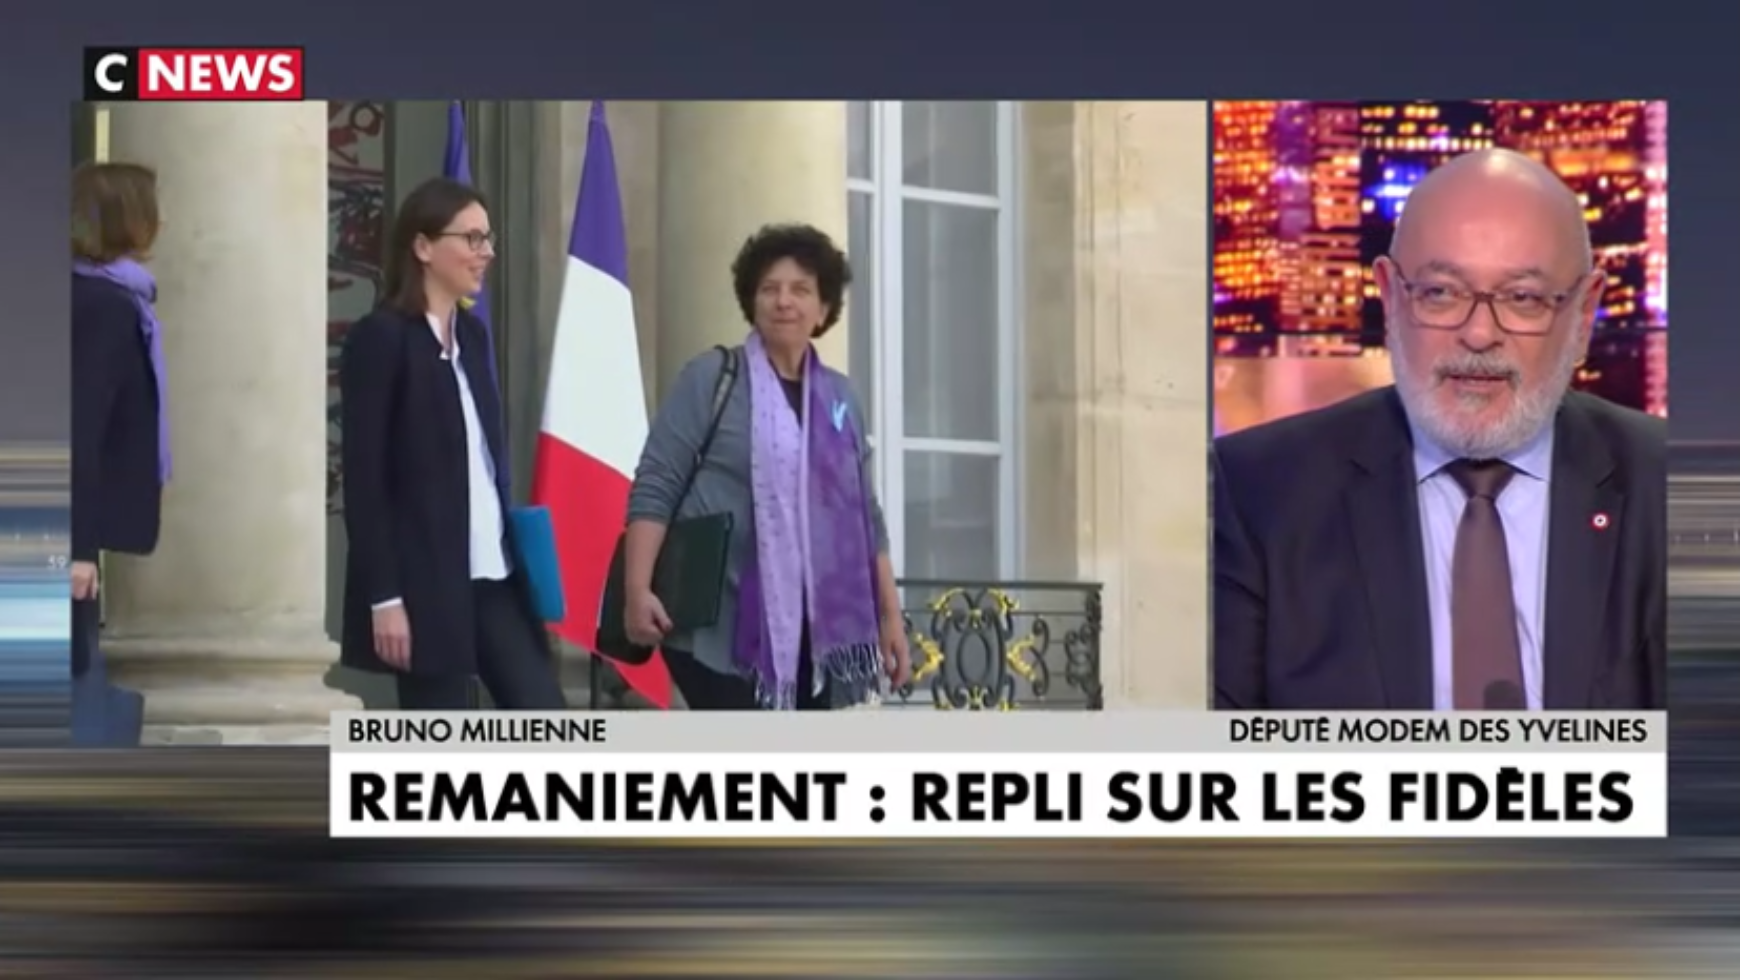 Remaniement, affaire « Tapie », propos de Hollande, Brexit : Bruno Millienne était l'invité de CNews